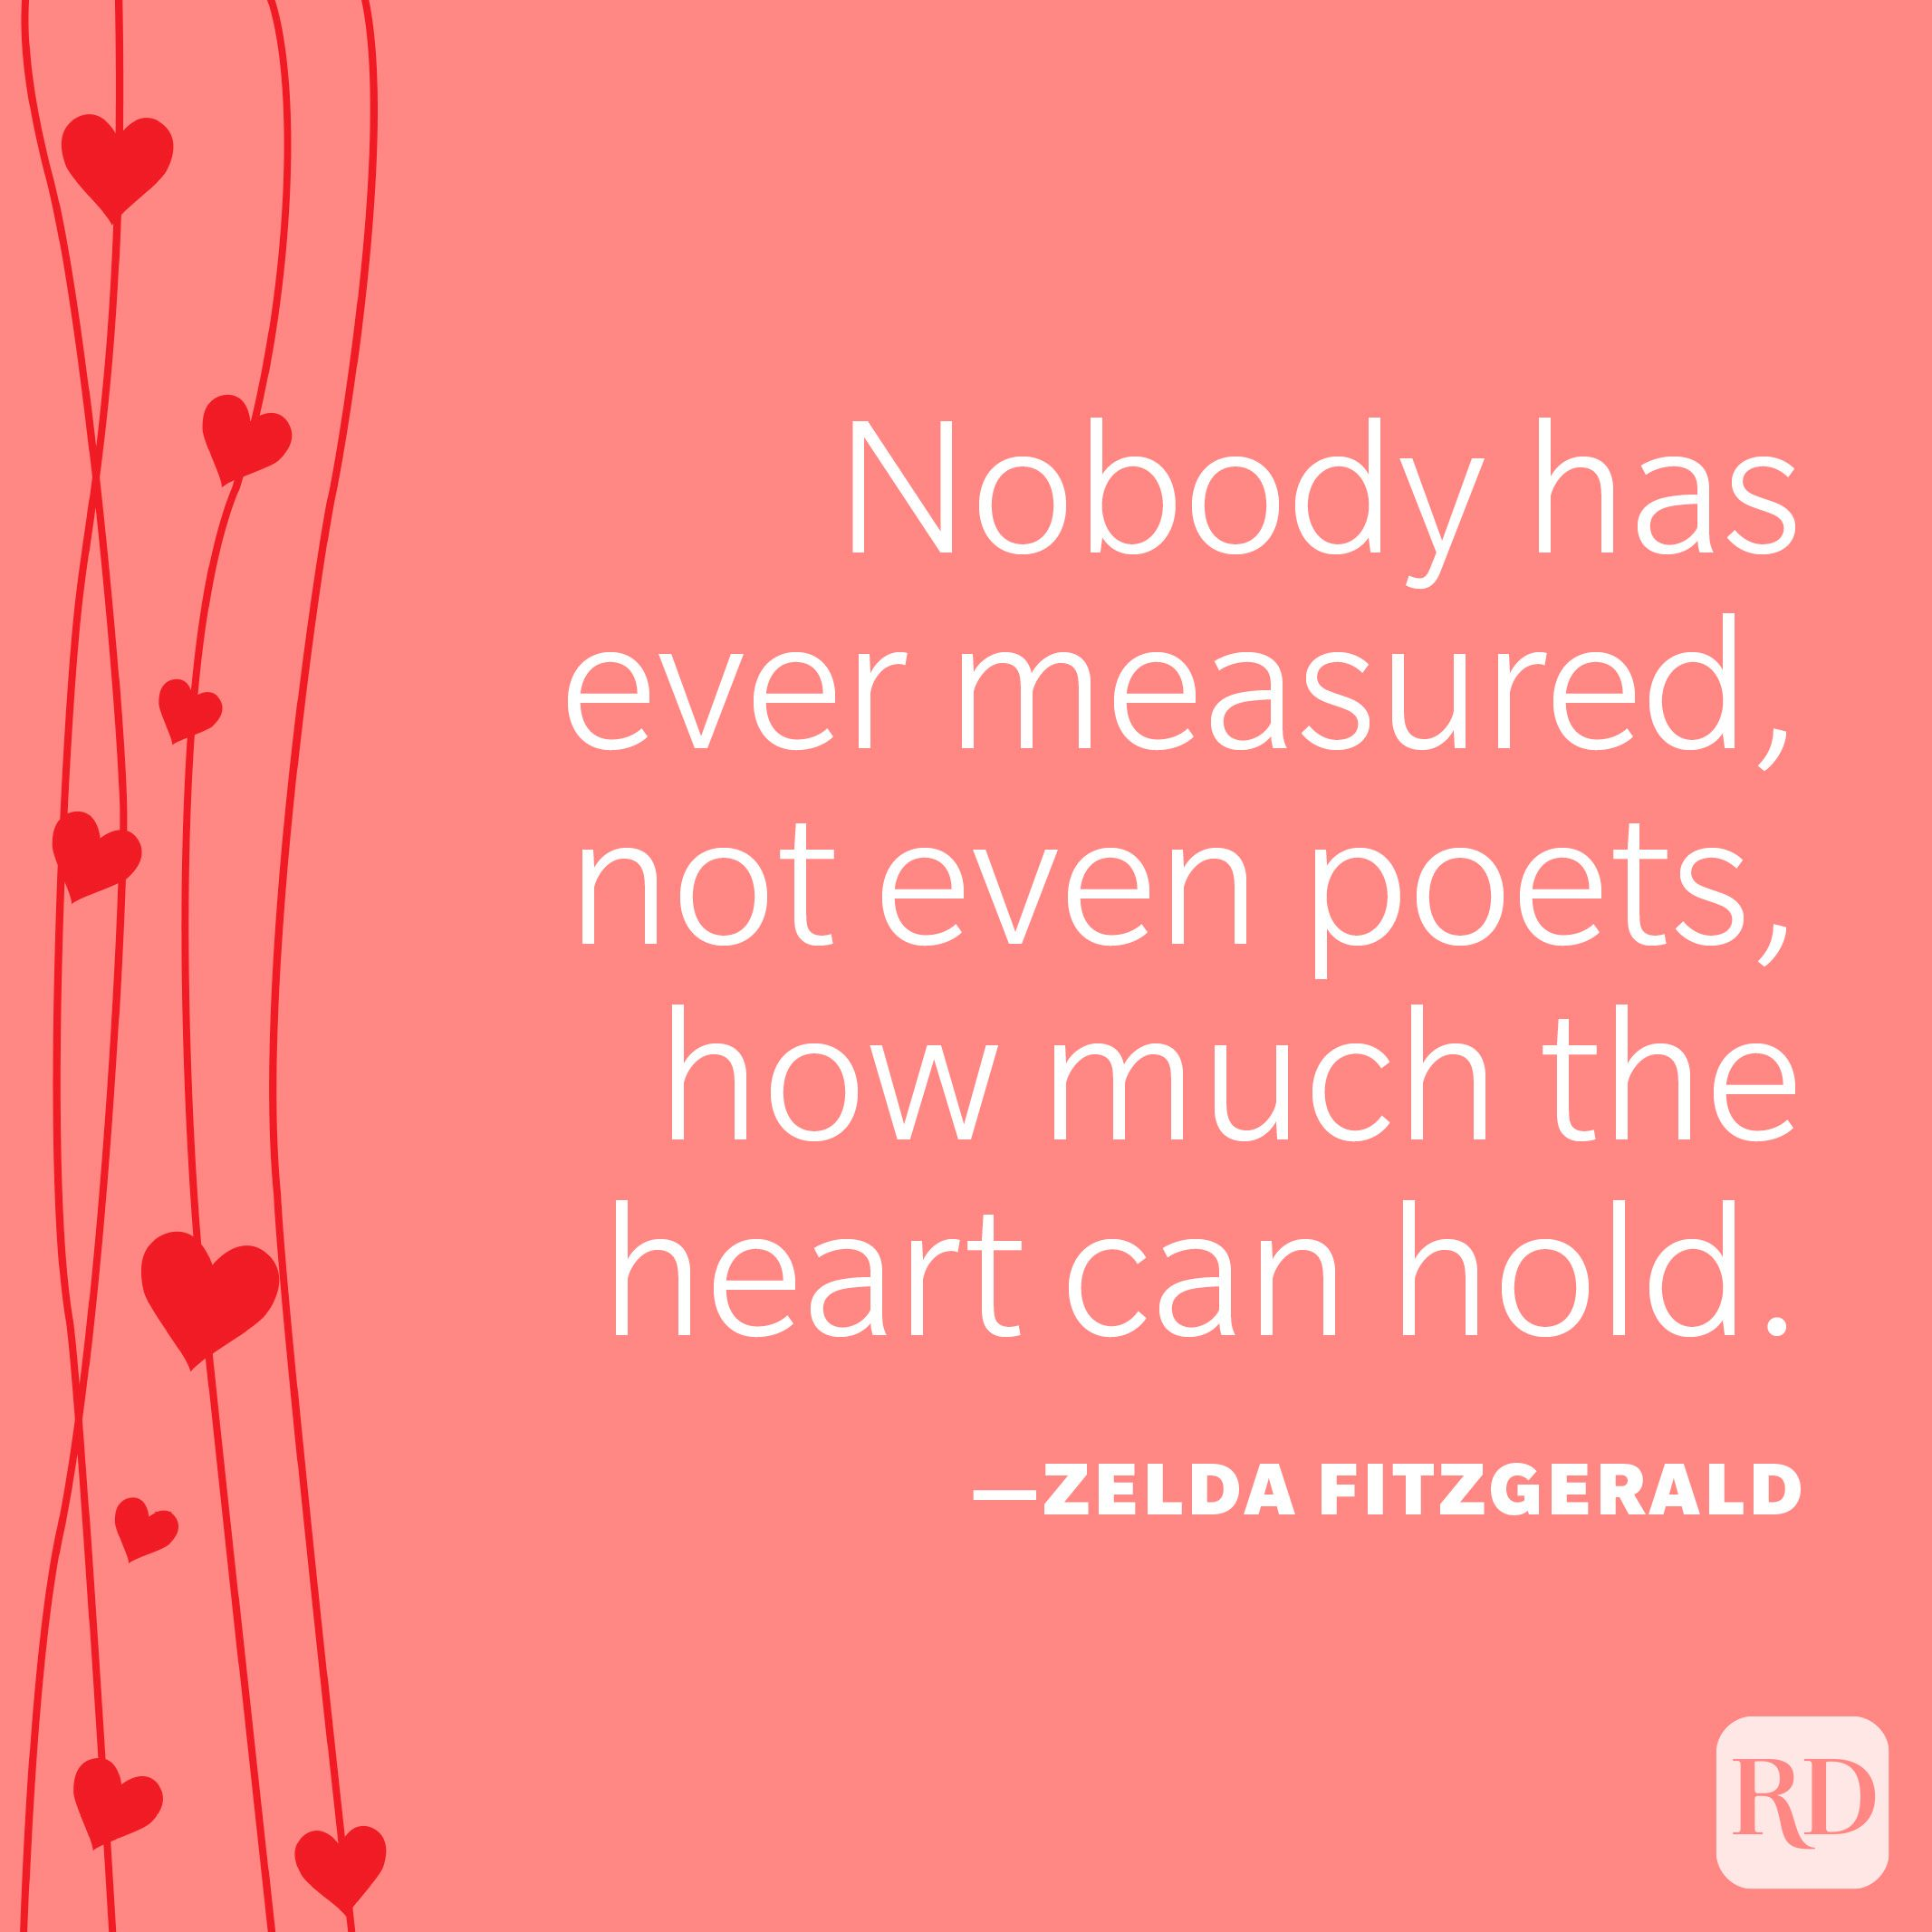 """""""Nobody has ever measured, not even poets, how much the heart can hold."""" —Zelda Fitzgerald"""